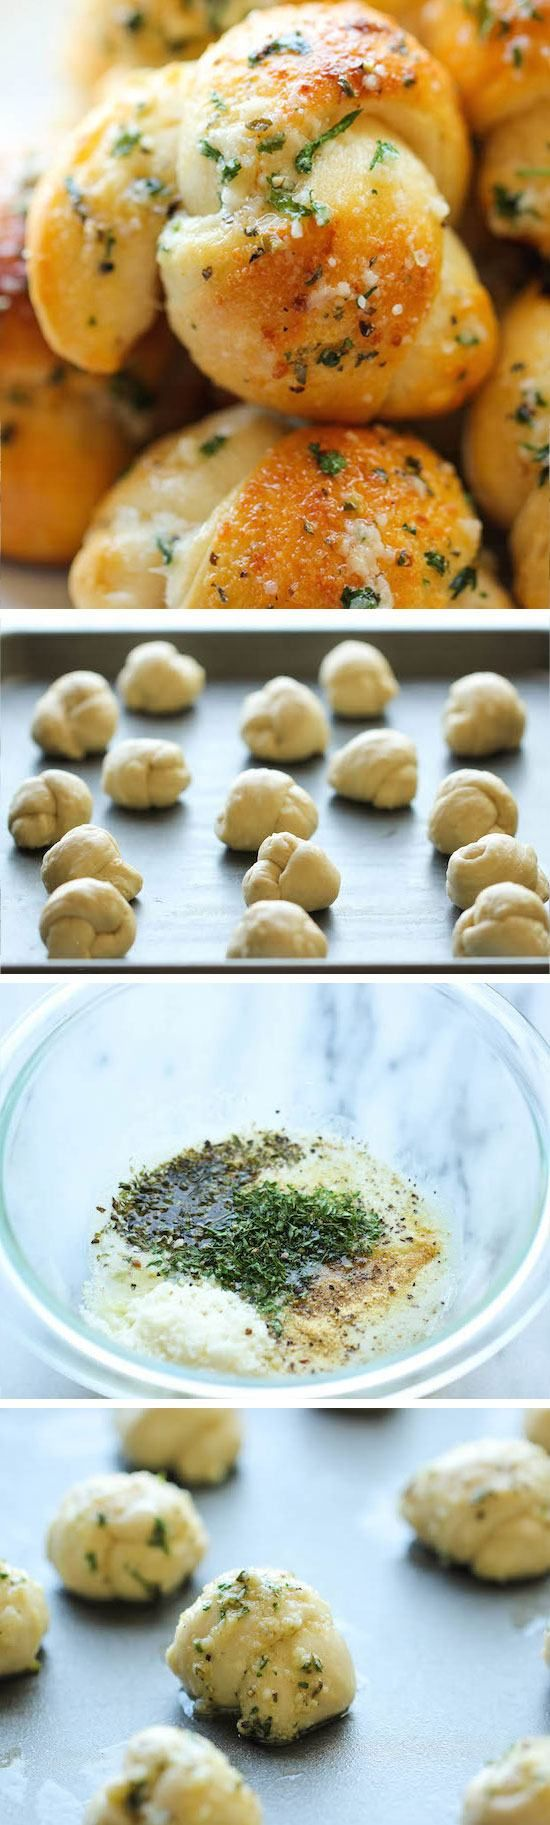 Easy Garlic Parmesan Knots   Easy Easter Appetizers for a Crowd   Easy Easter Food Ideas + Recipes